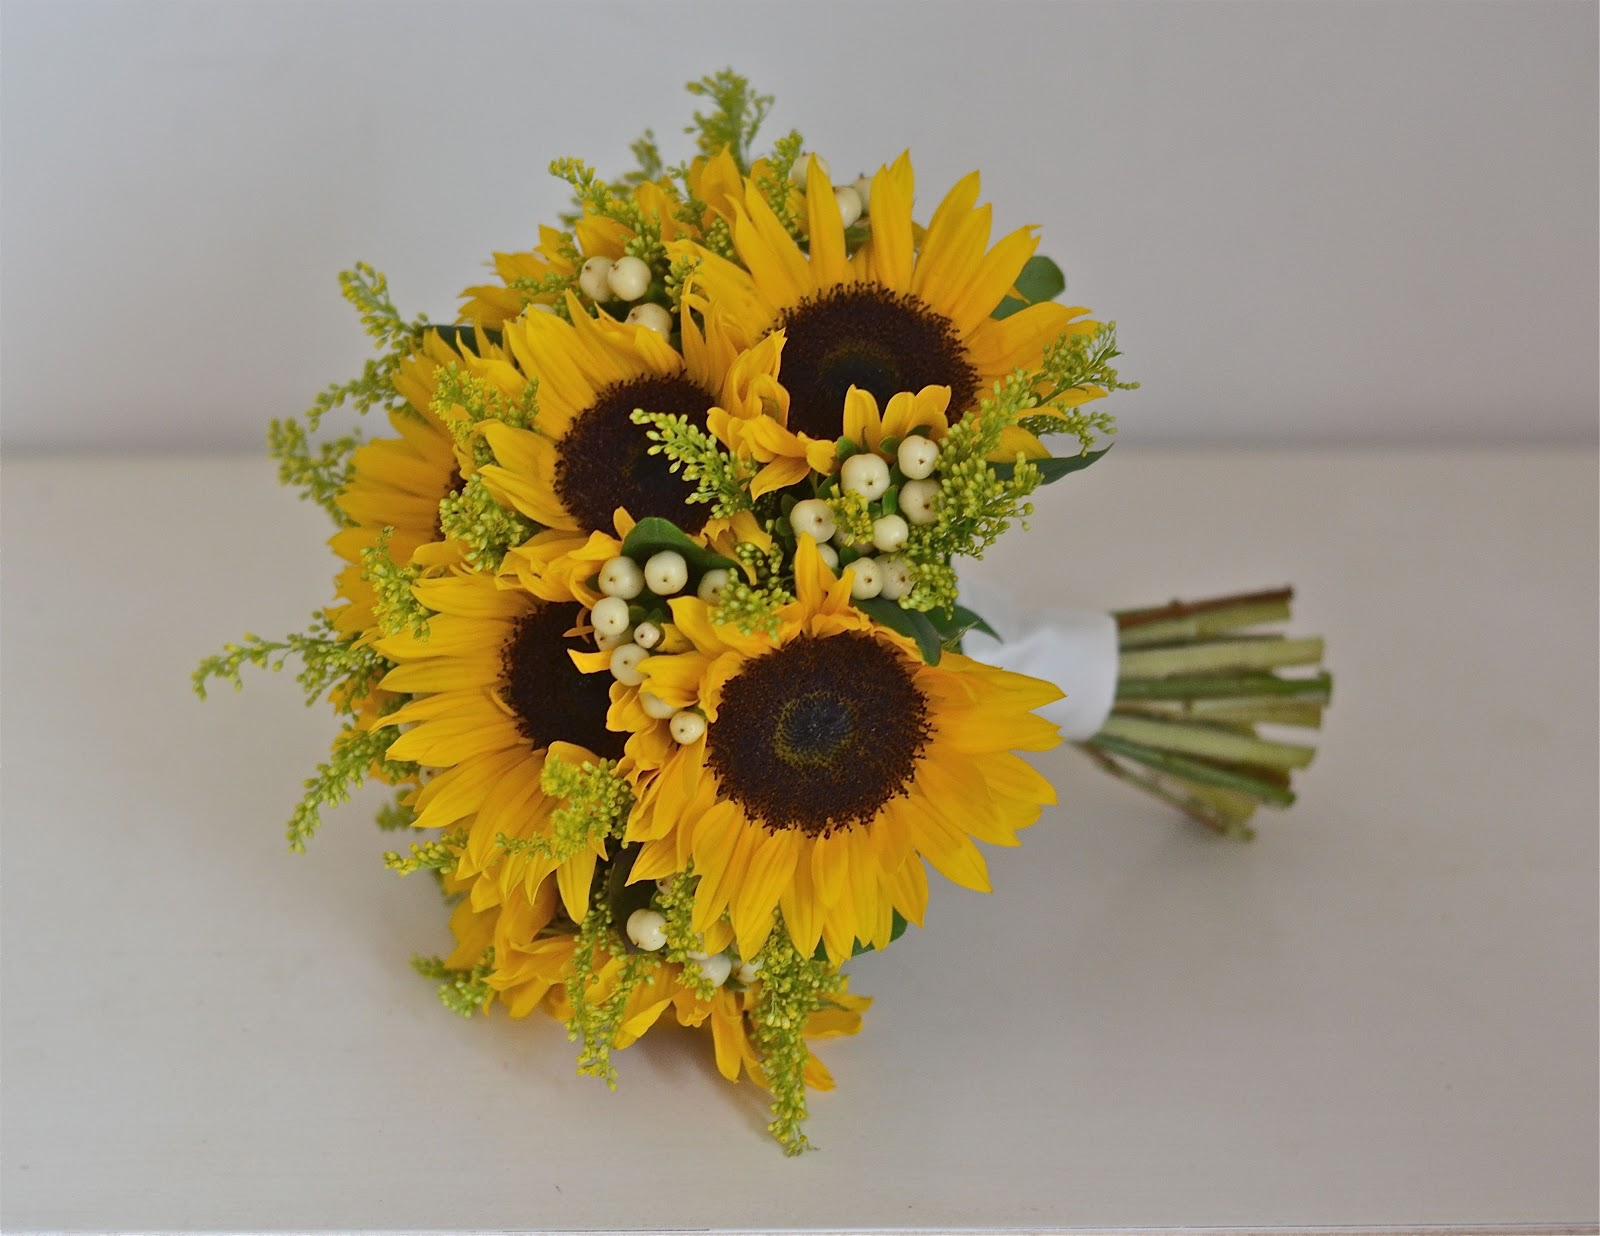 Bridesmaid Bouquets Sunflowers : Wedding flowers becky s sunflowers